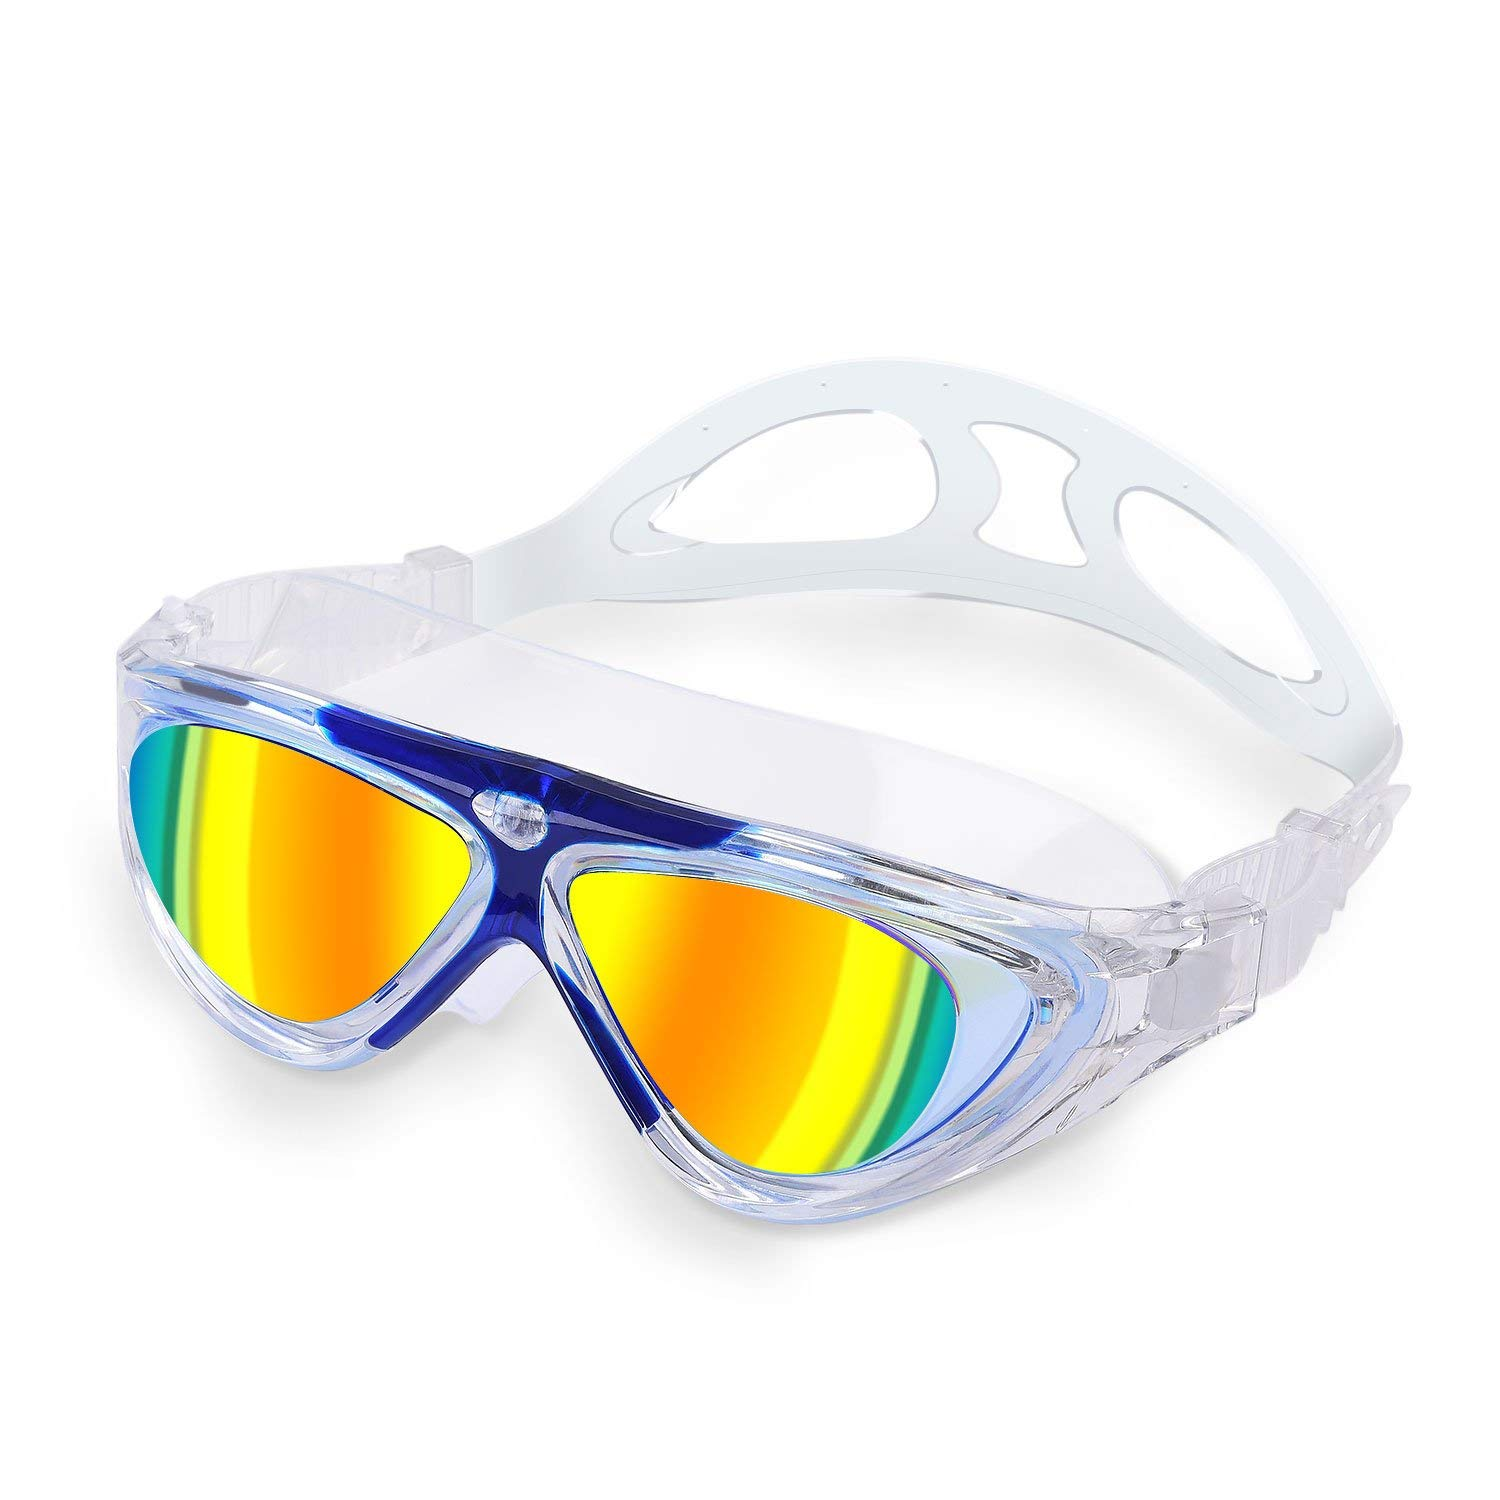 470b75746d5d Get Quotations · AMIABLE HD Swimming Goggles